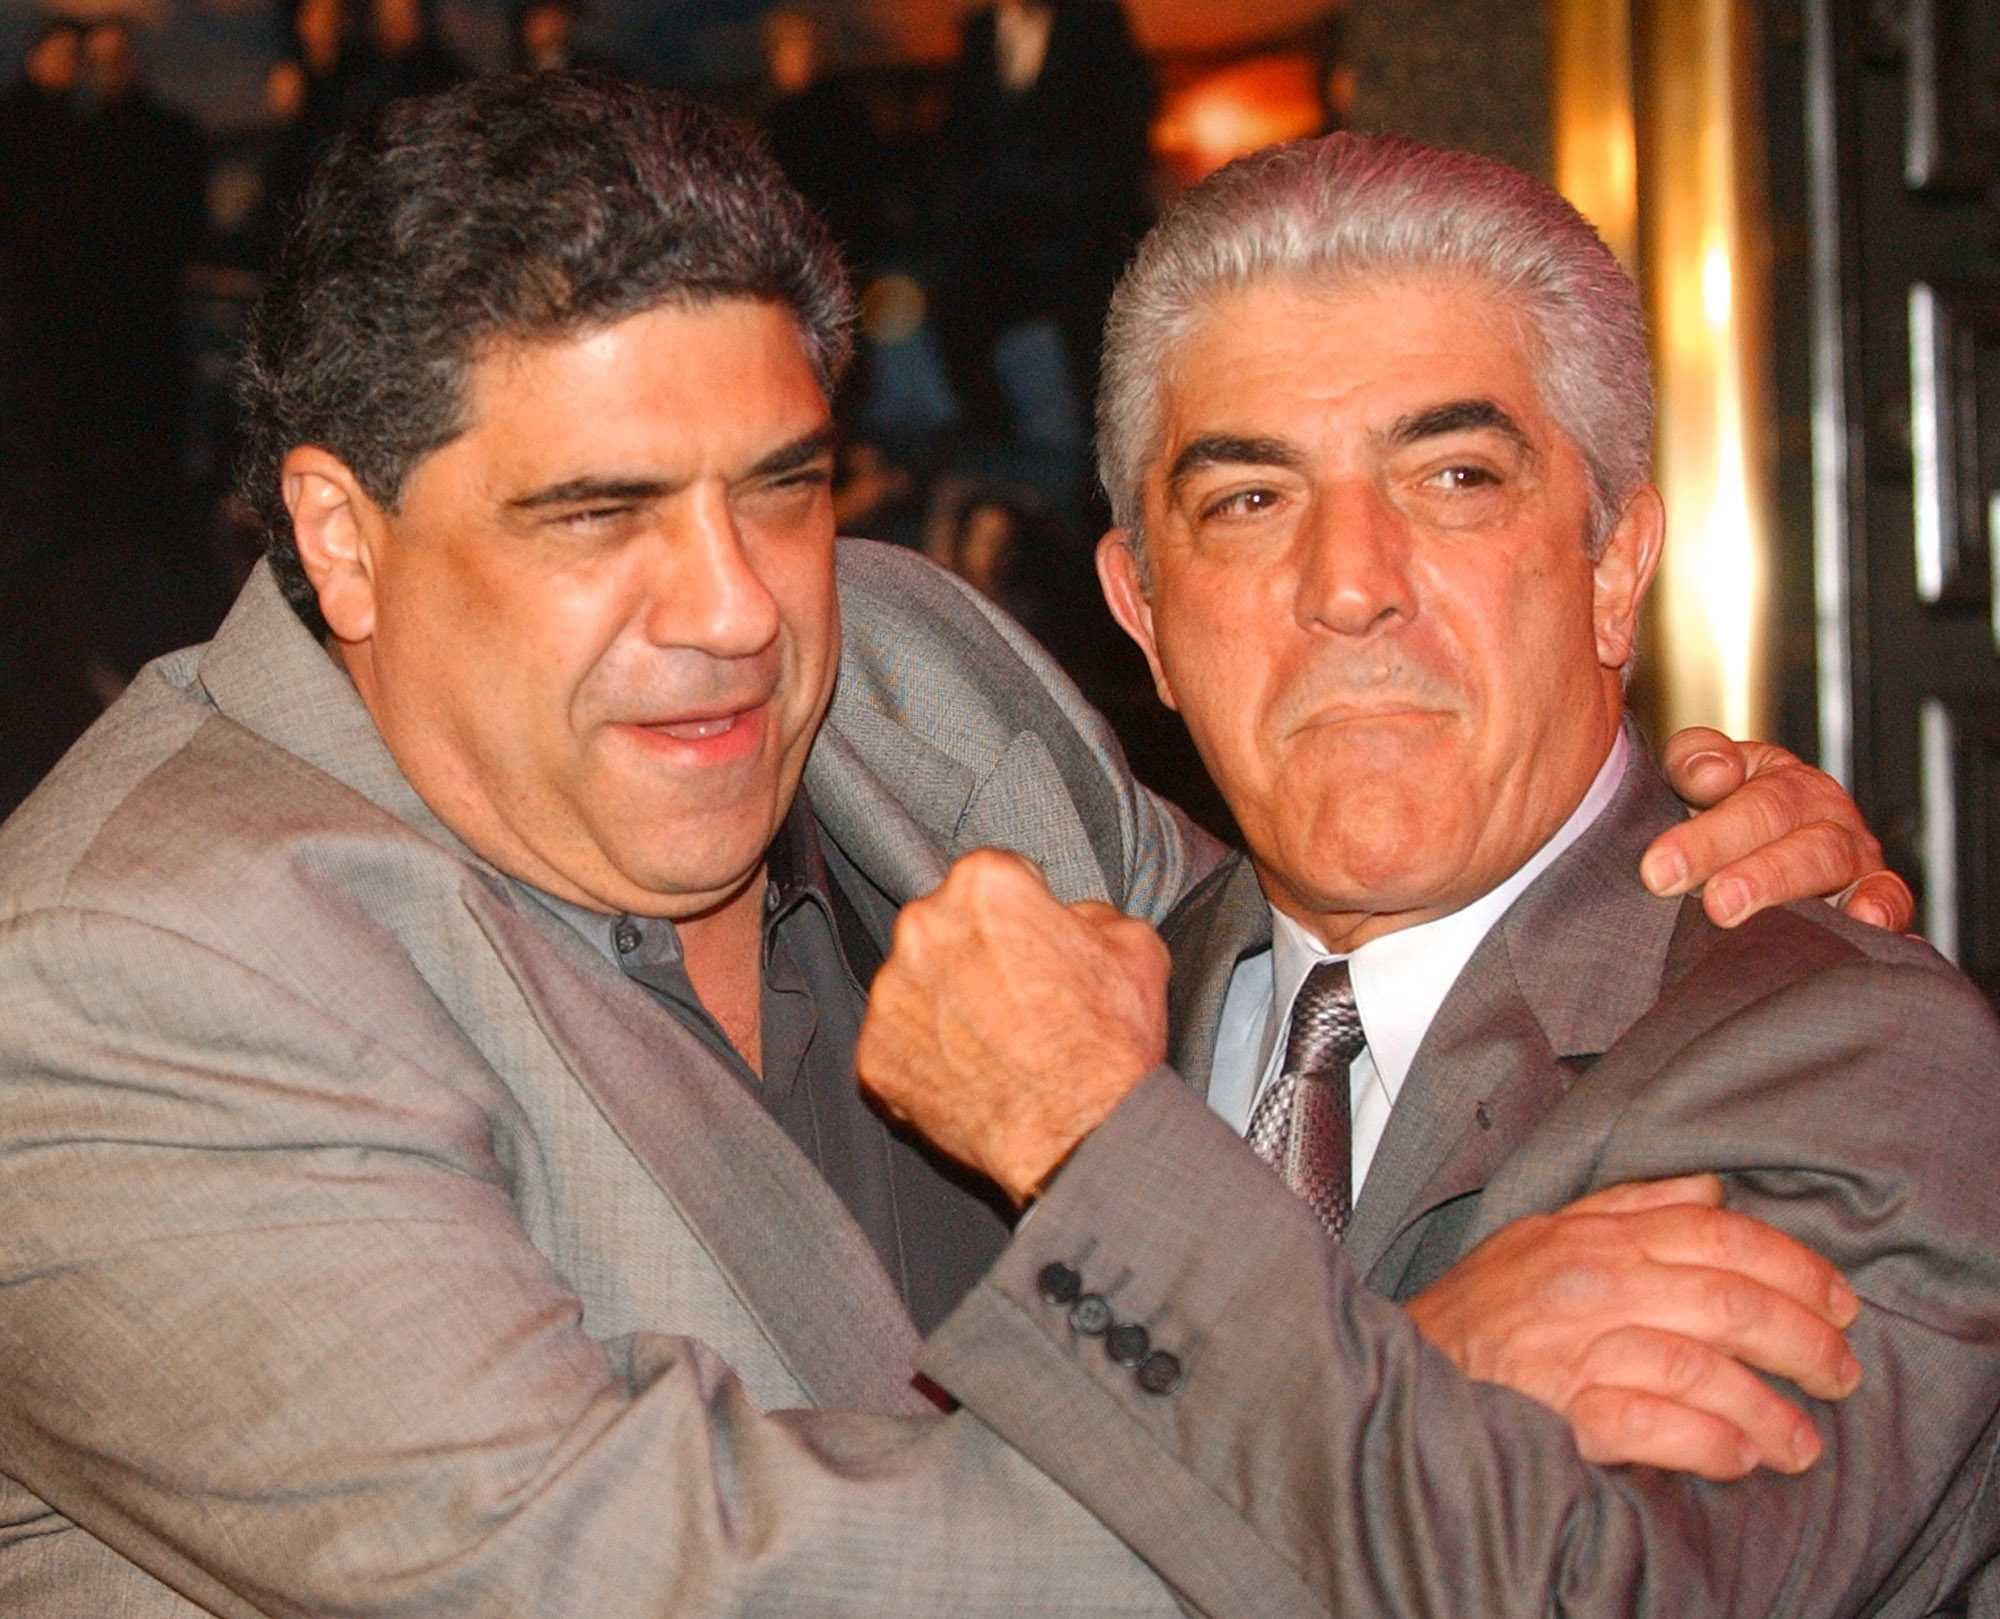 Frank Vincent, actor best known for role in 'The Sopranos' dies